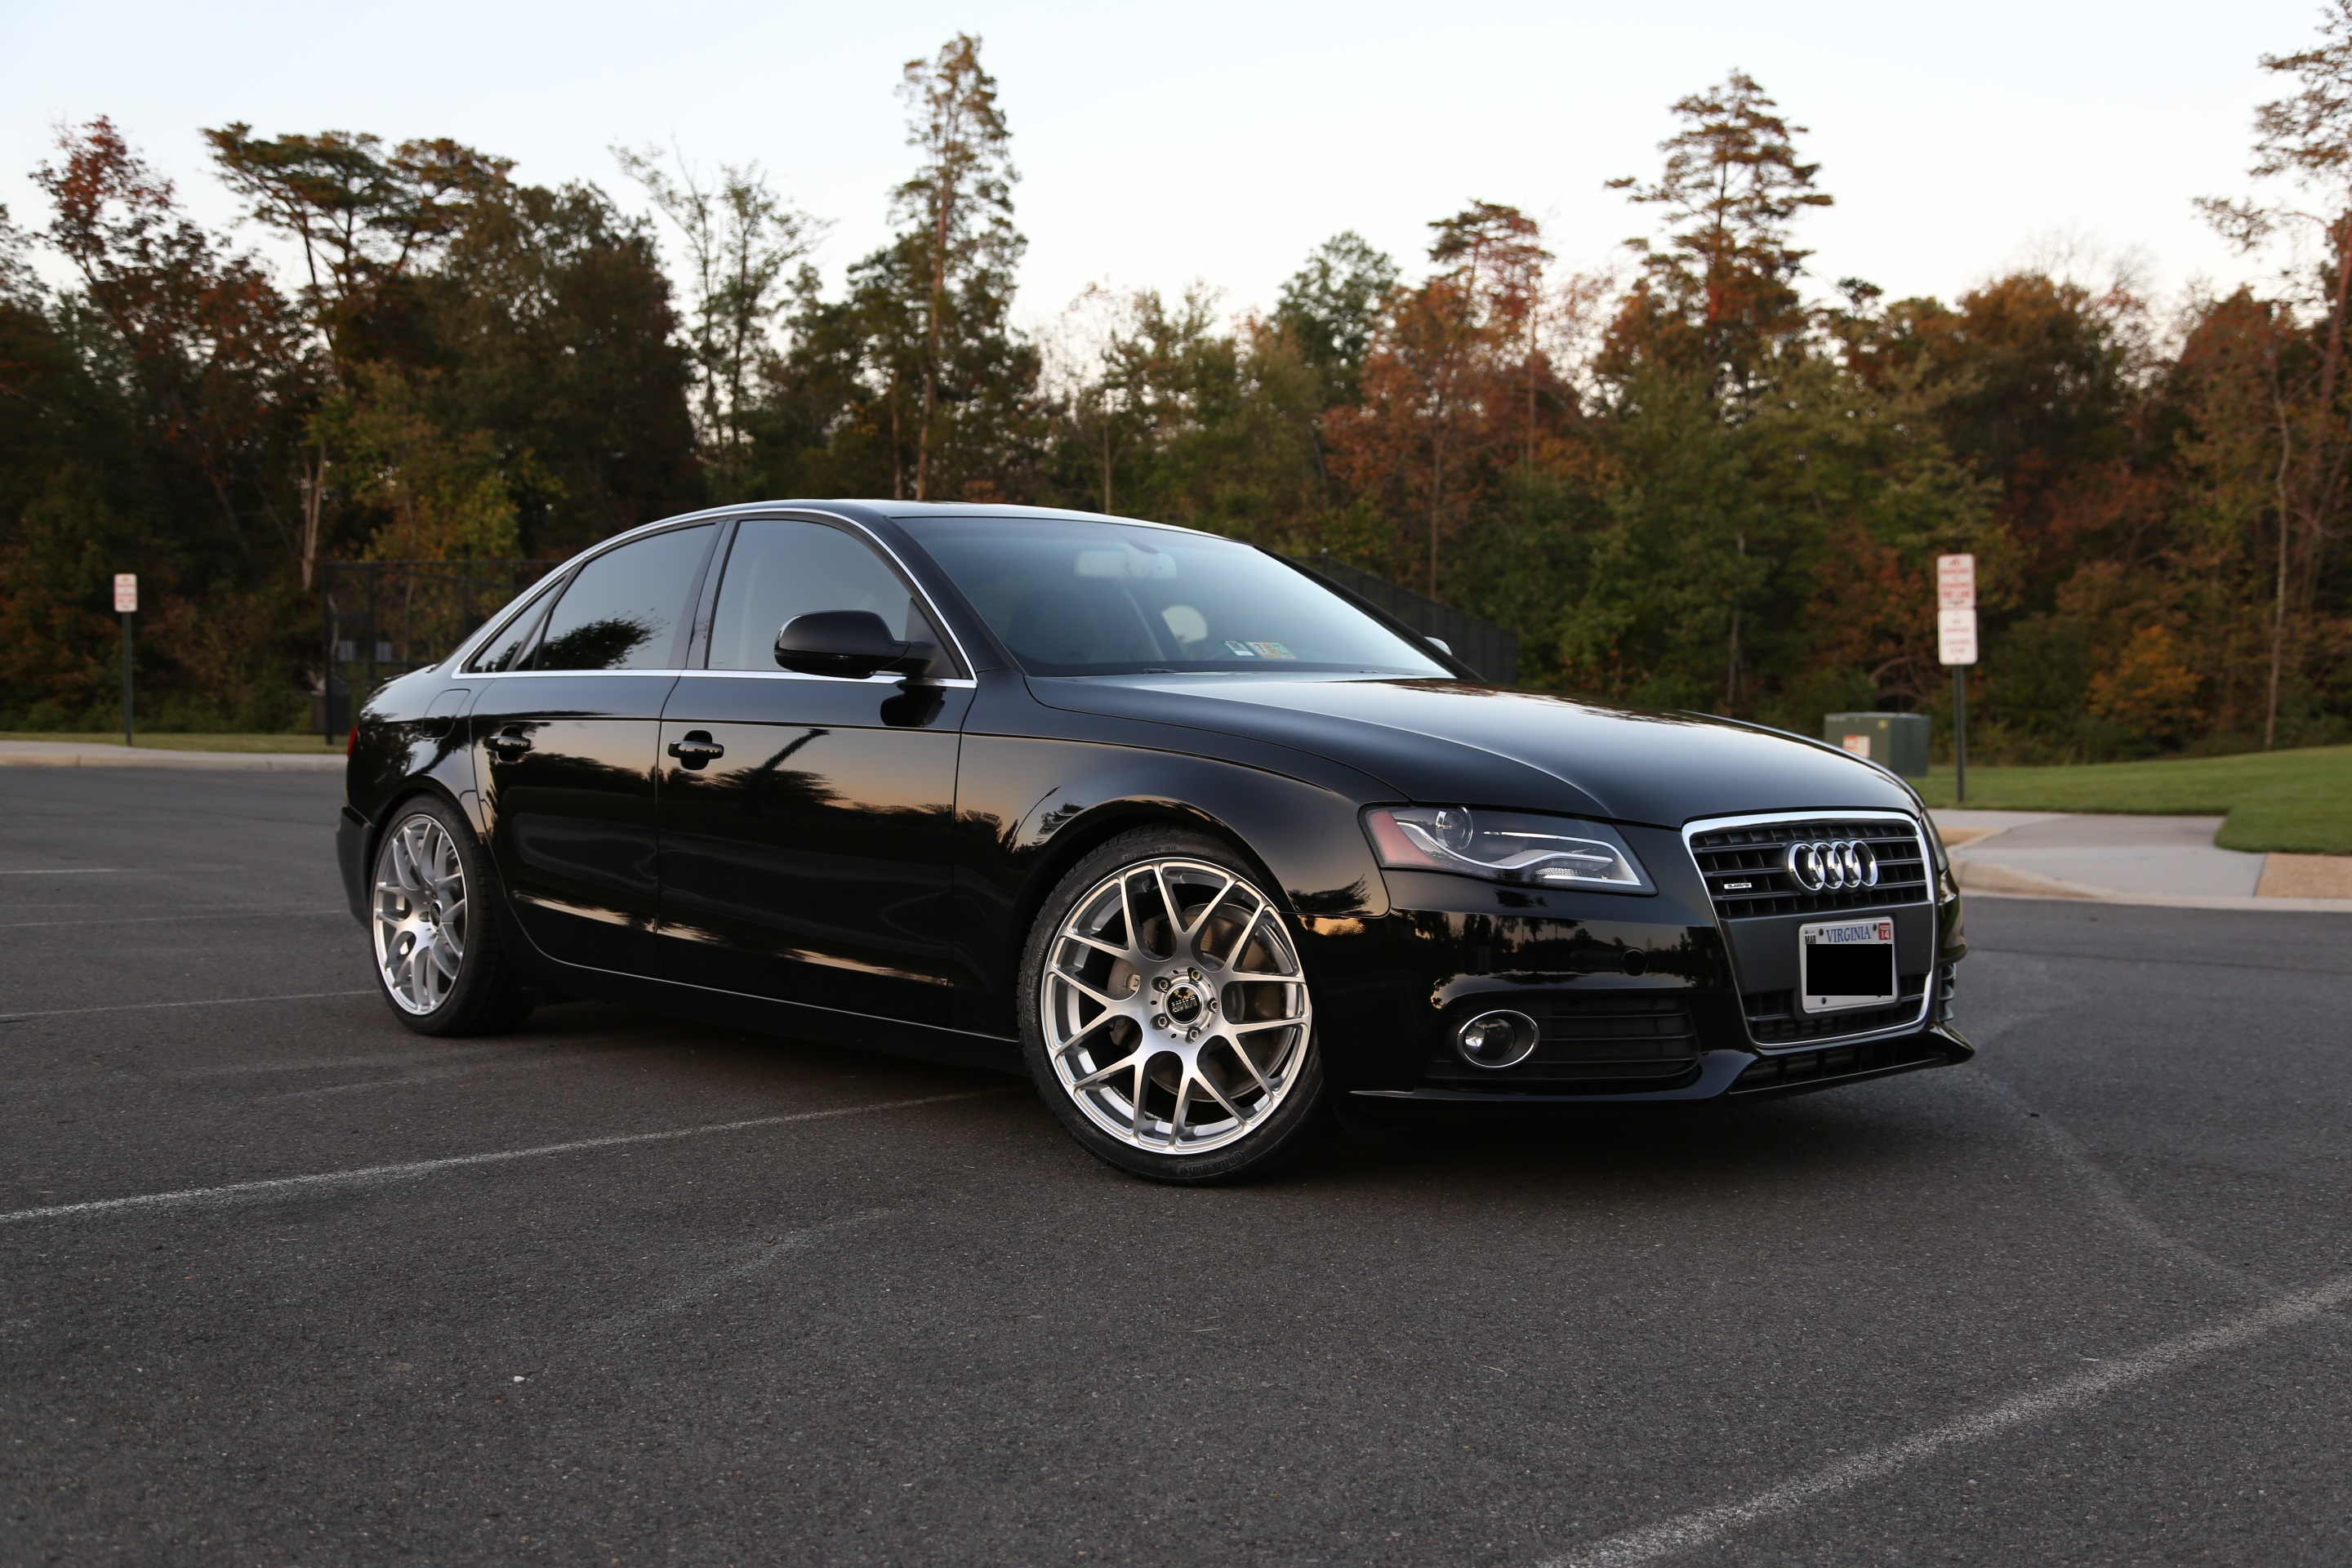 Audi A4 Custom Wheels Vmr V710 19x8 5 Et 35 Tire Size